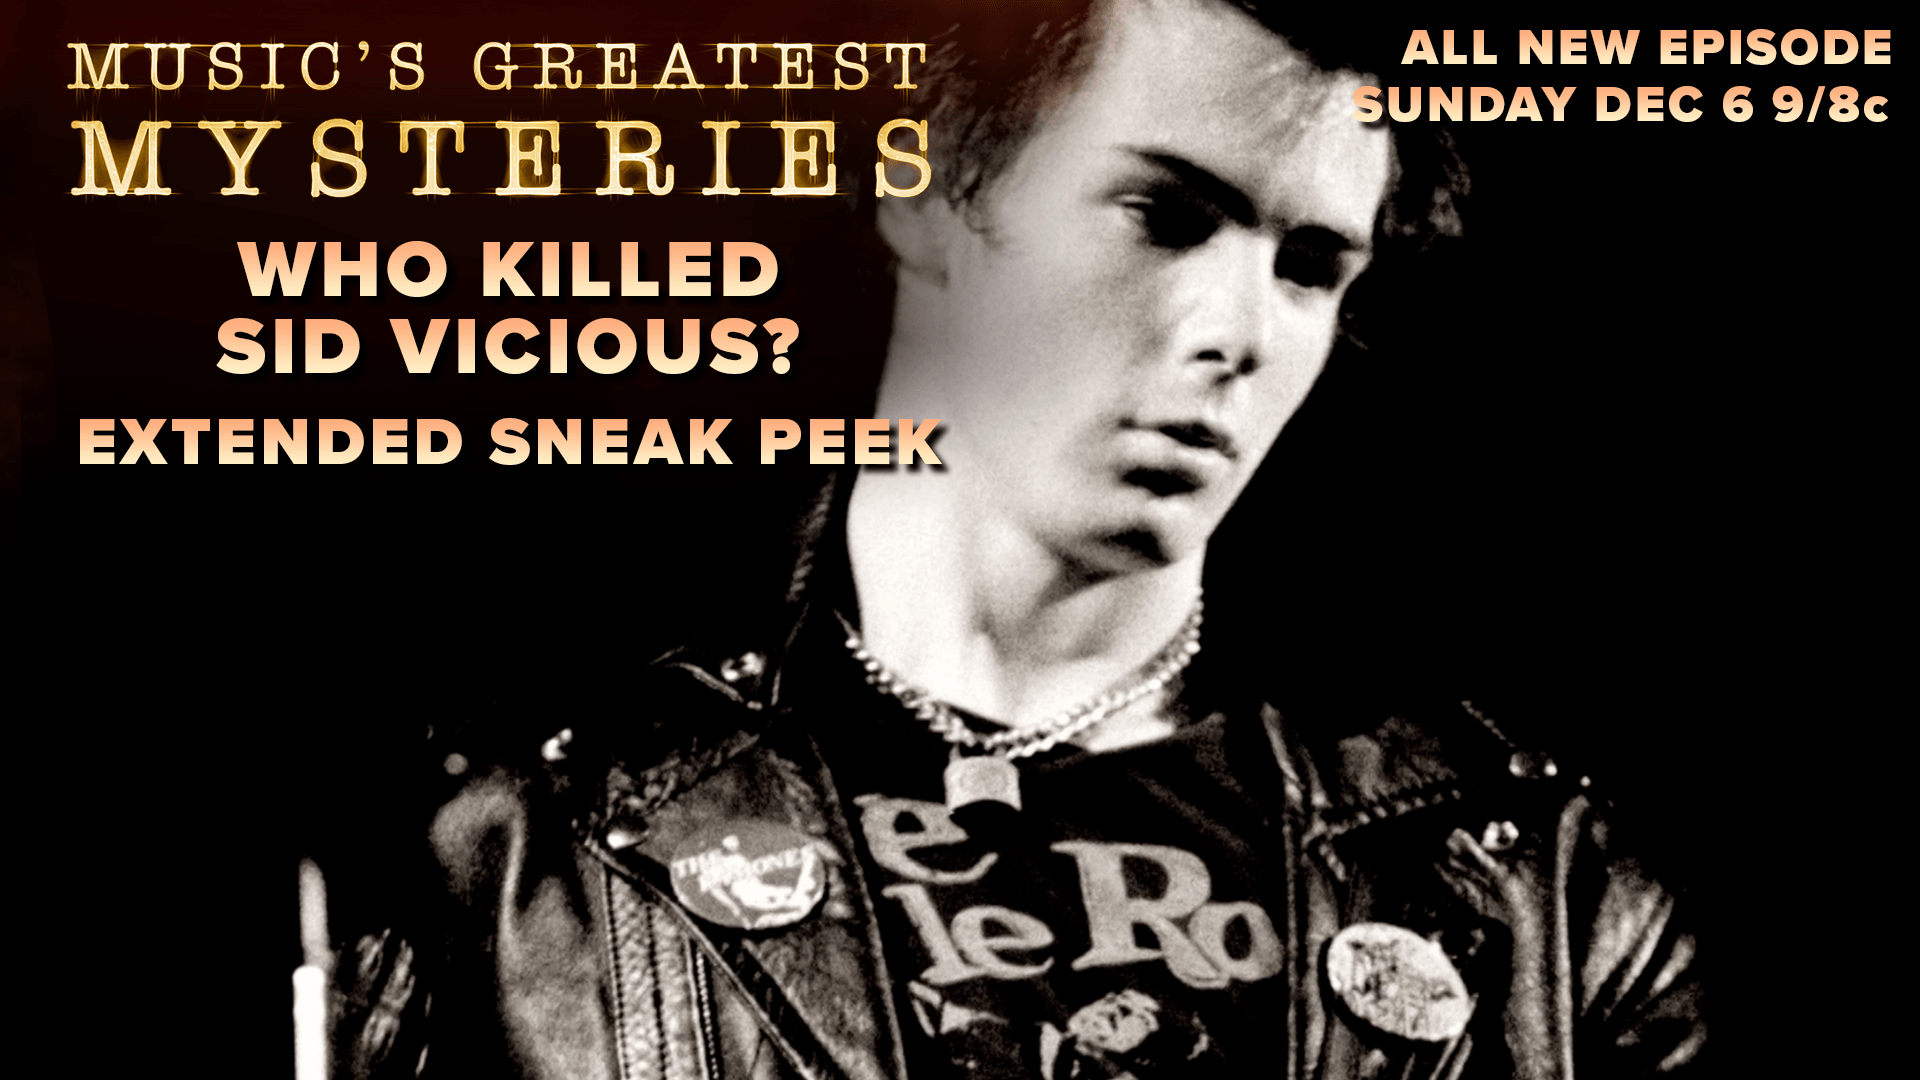 Who Killed Sid Vicious? Extended Sneak Peek | Music's Greatest Mysteries